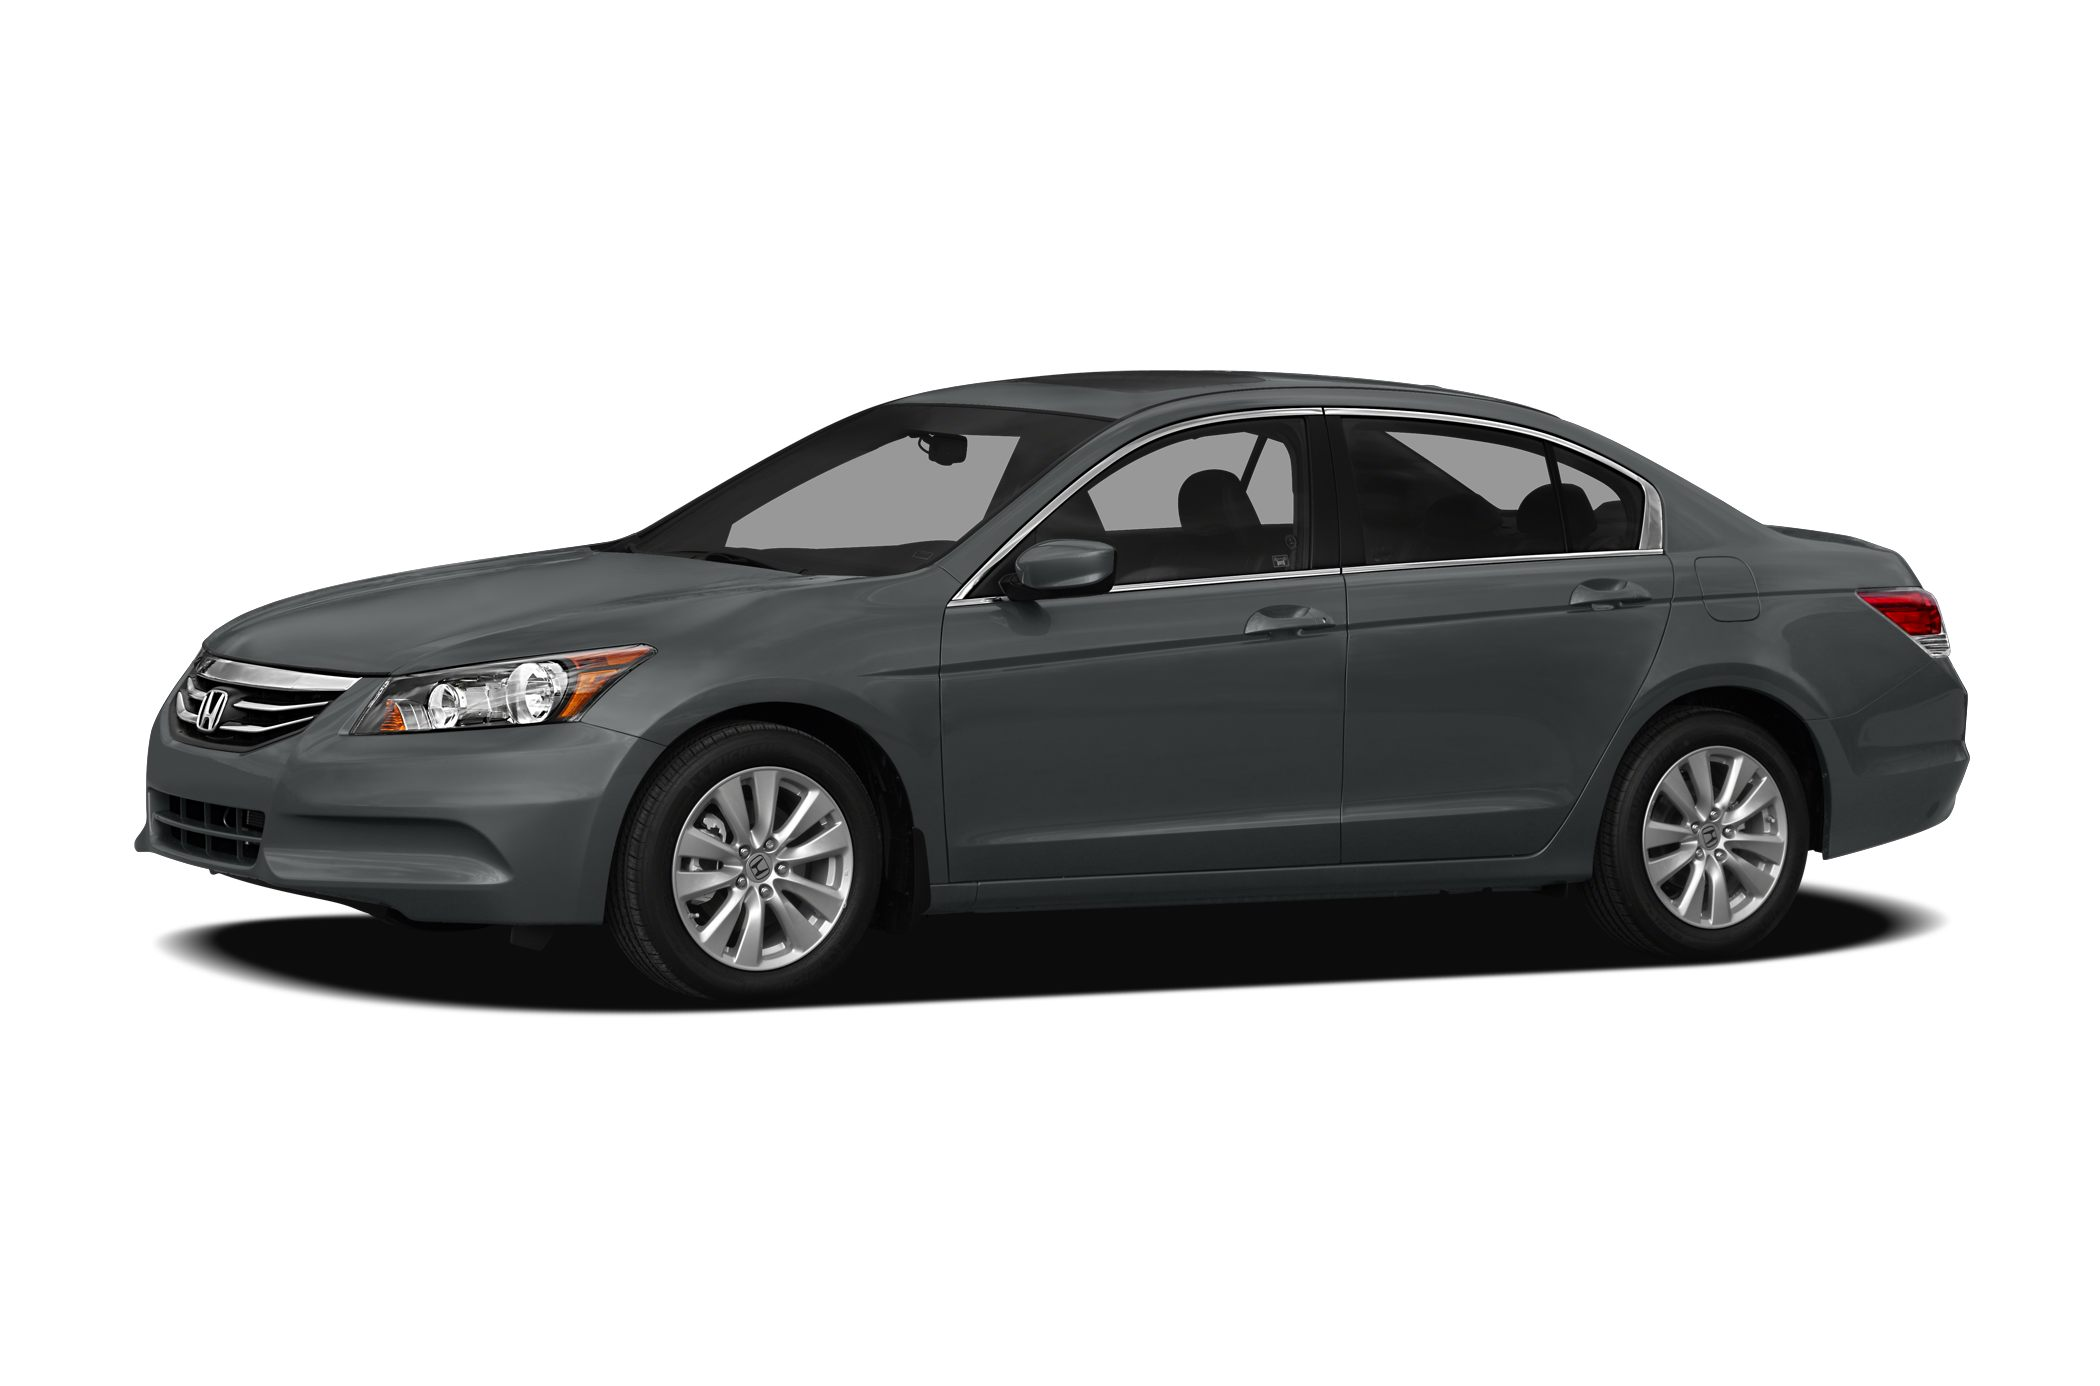 2012 Honda Accord 24 LX-P Vehicle Detailed Recent Oil Change and Passed Dealer Inspection Oh y